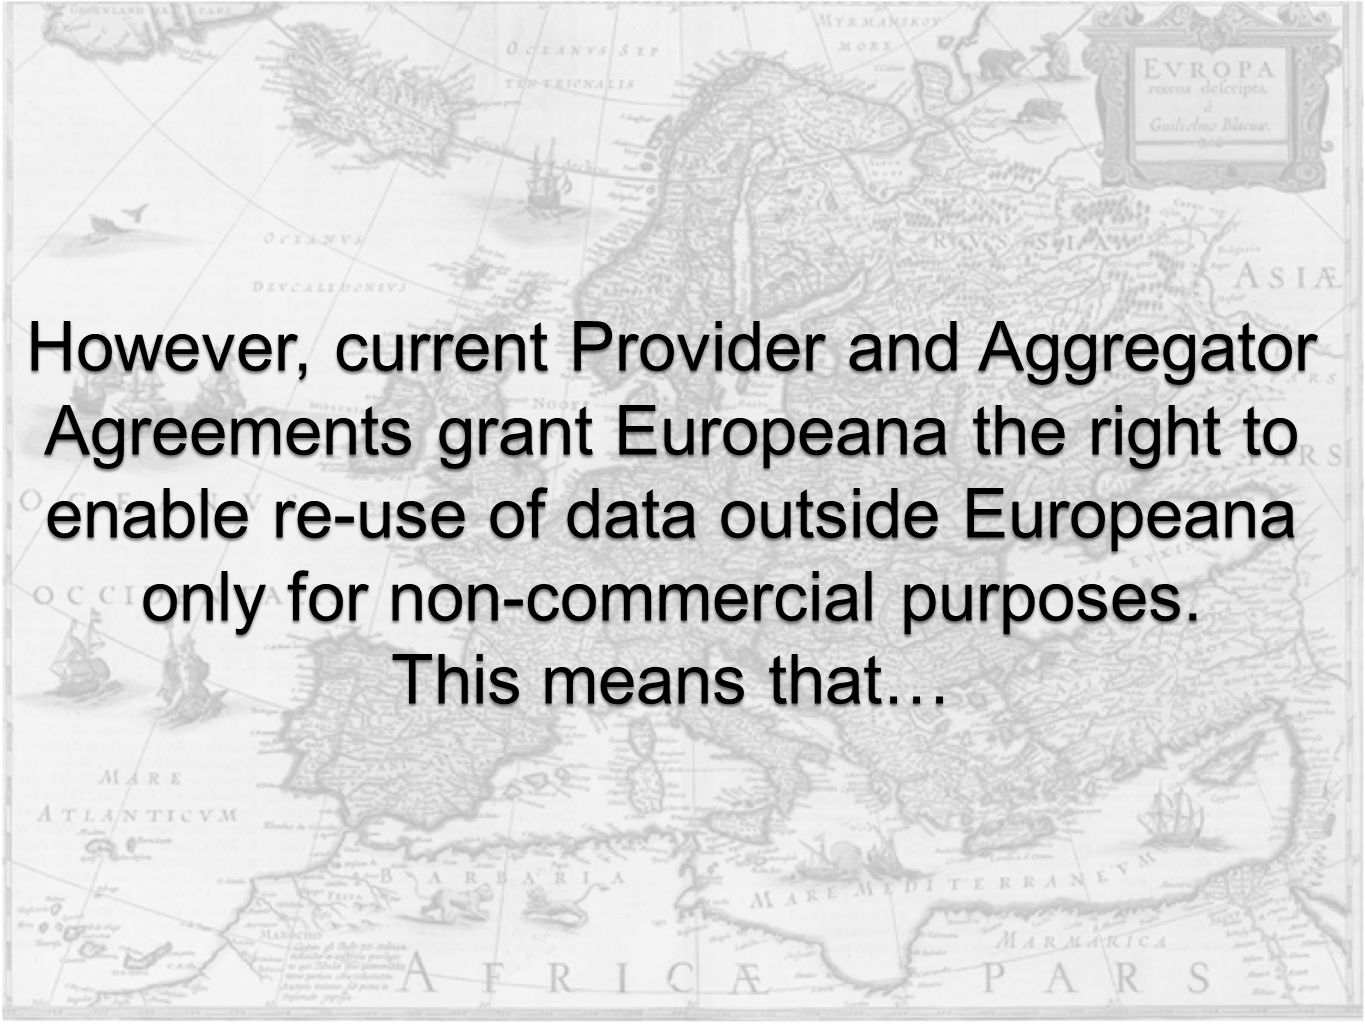 However, current Provider and Aggregator Agreements grant Europeana the right to enable re-use of data outside Europeana only for non-commercial purpo